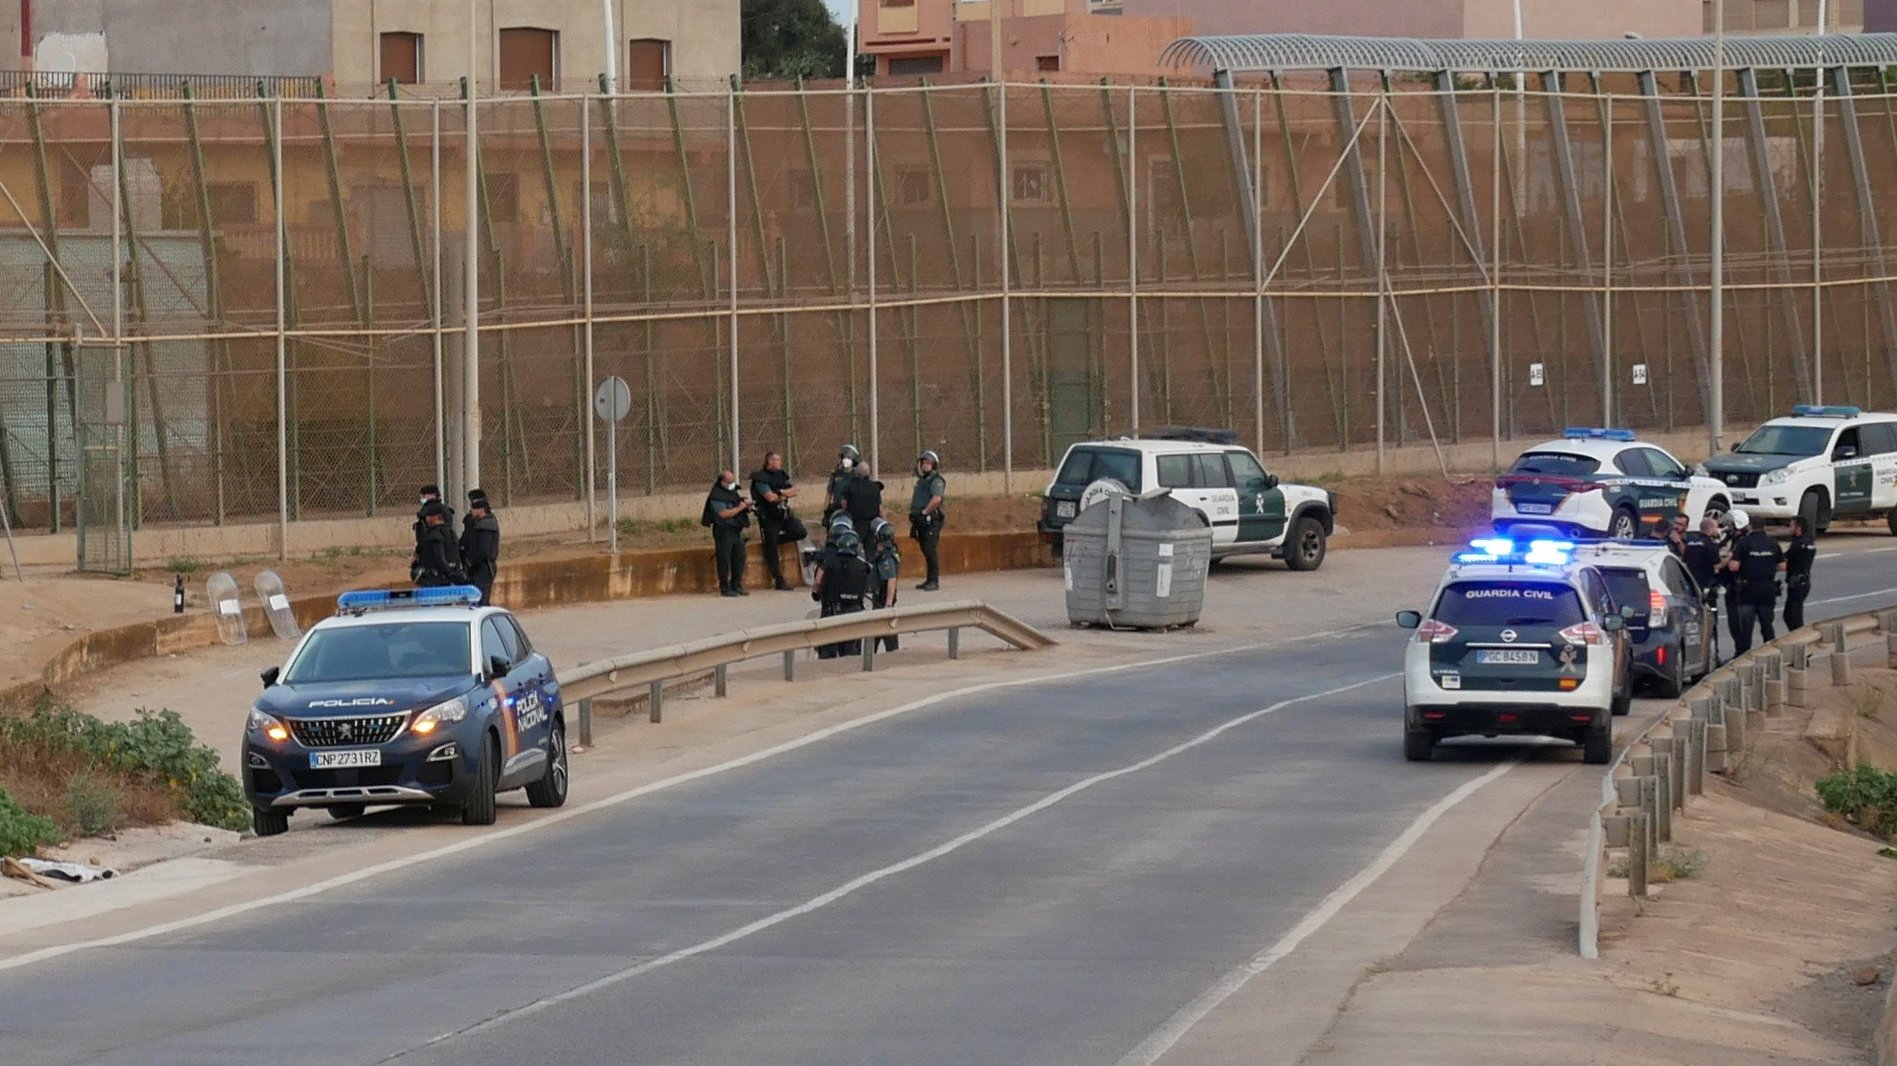 epa09363852 Spanish security forces members stand guard next to the border fence with Morocco after several migrants managed to jump the border fence and reach Spain, in Melilla, a Spanish enclave in northern Africa, 25 July 2021. Several migrants reached Spain on the early morning, the fifth such incident at the border with Morocco in the last two weeks.  EPA/PAQUI SANCHEZ